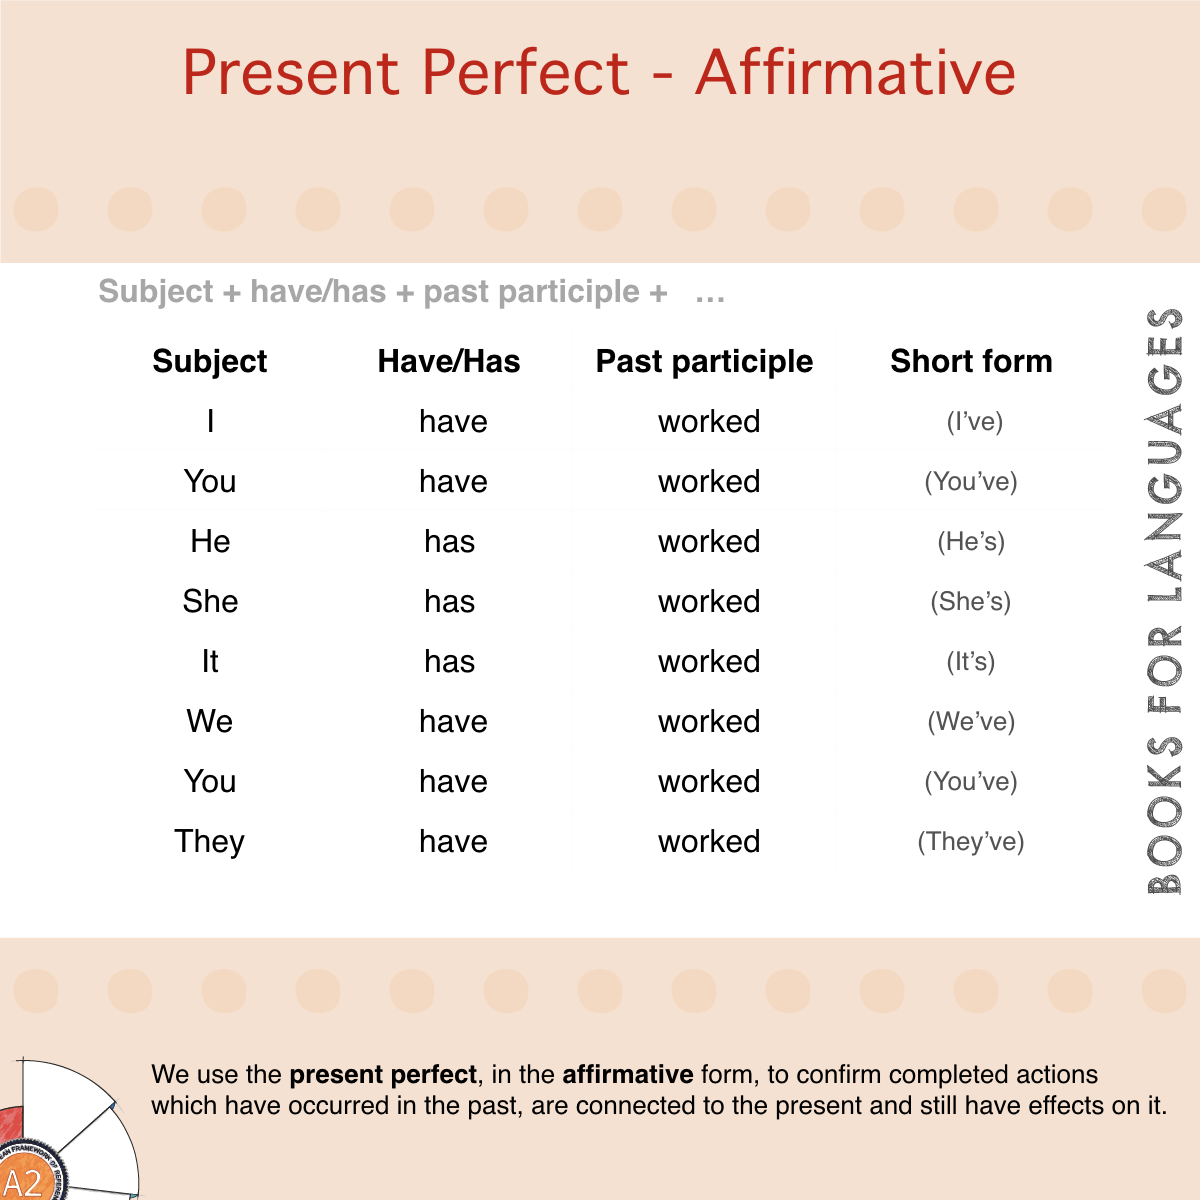 Present Perfect Affirmative English Grammar A2 Level